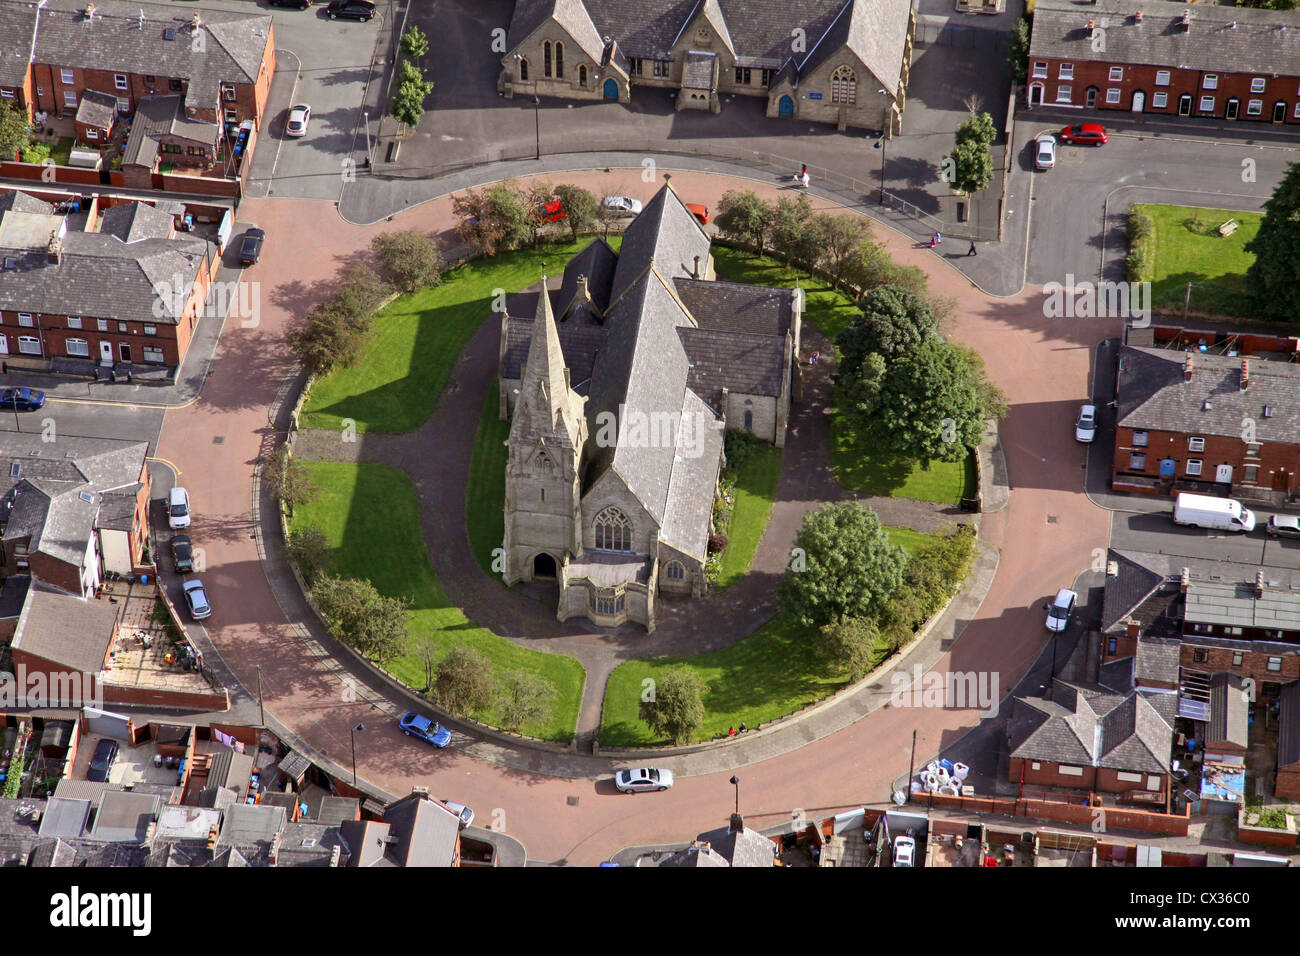 aerial view of a church in a roundabout on a housing estate in Oldham - Stock Image